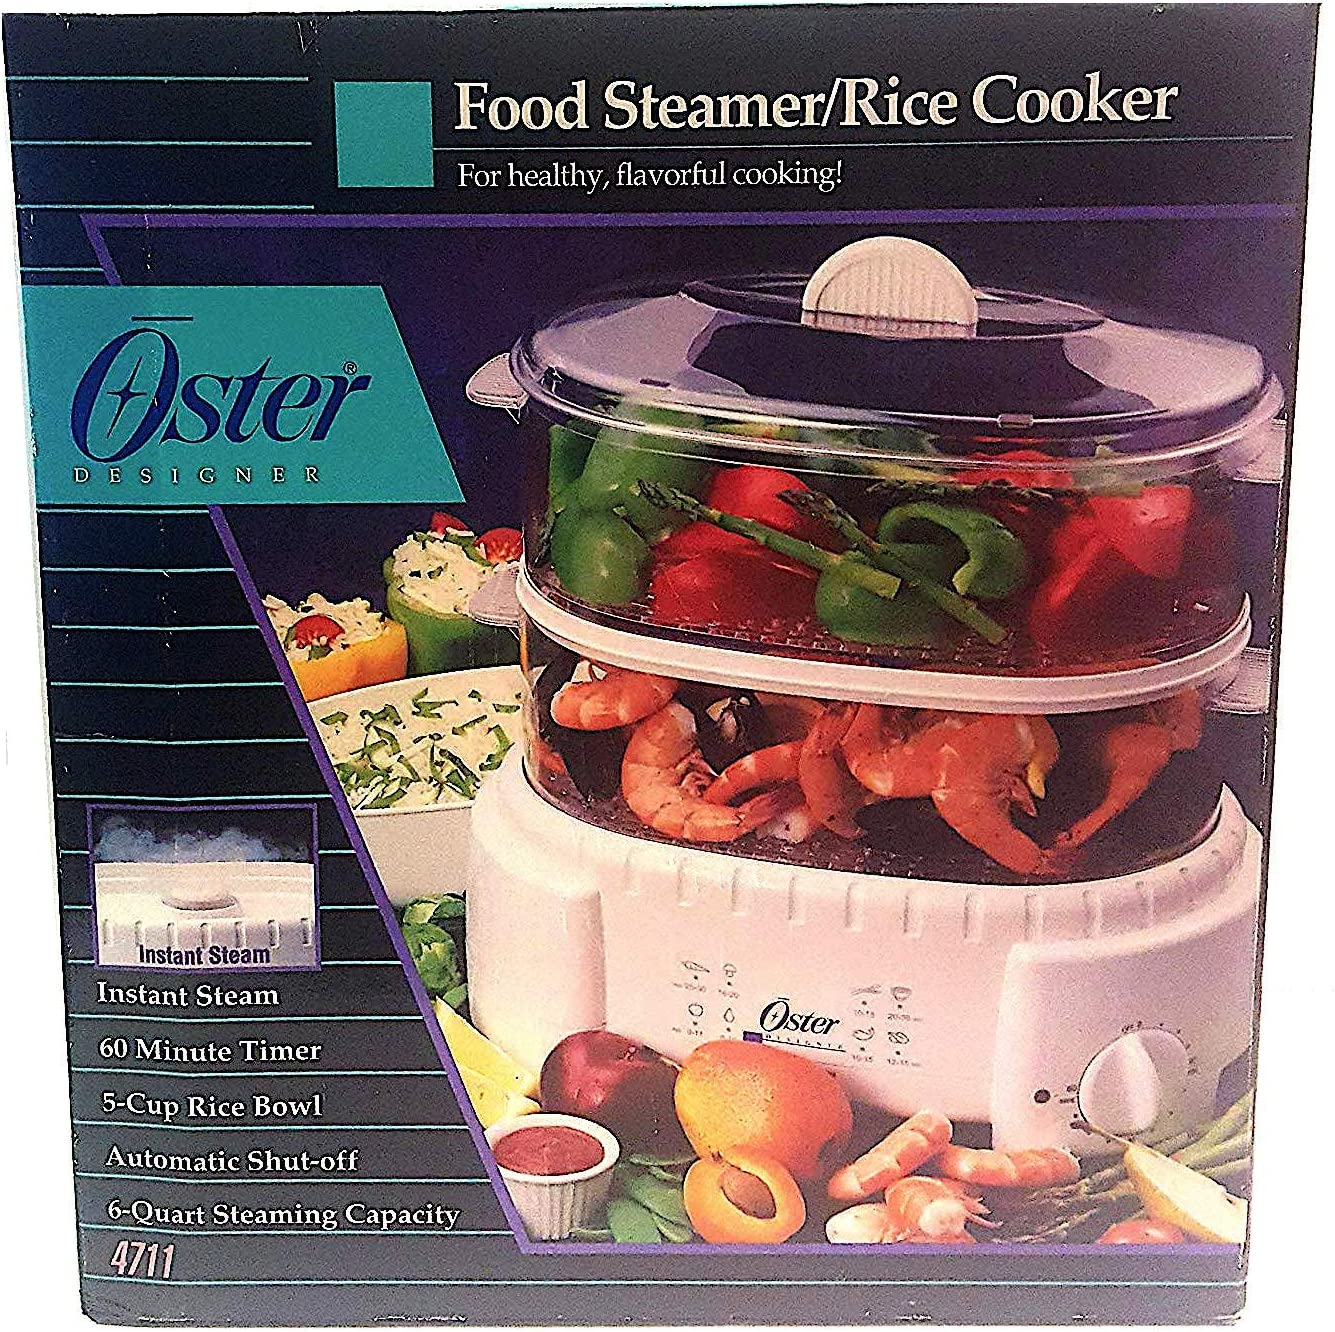 Oster 4711 Designer Large 6 Quart Capacity Food Steamer and Rice Cooker